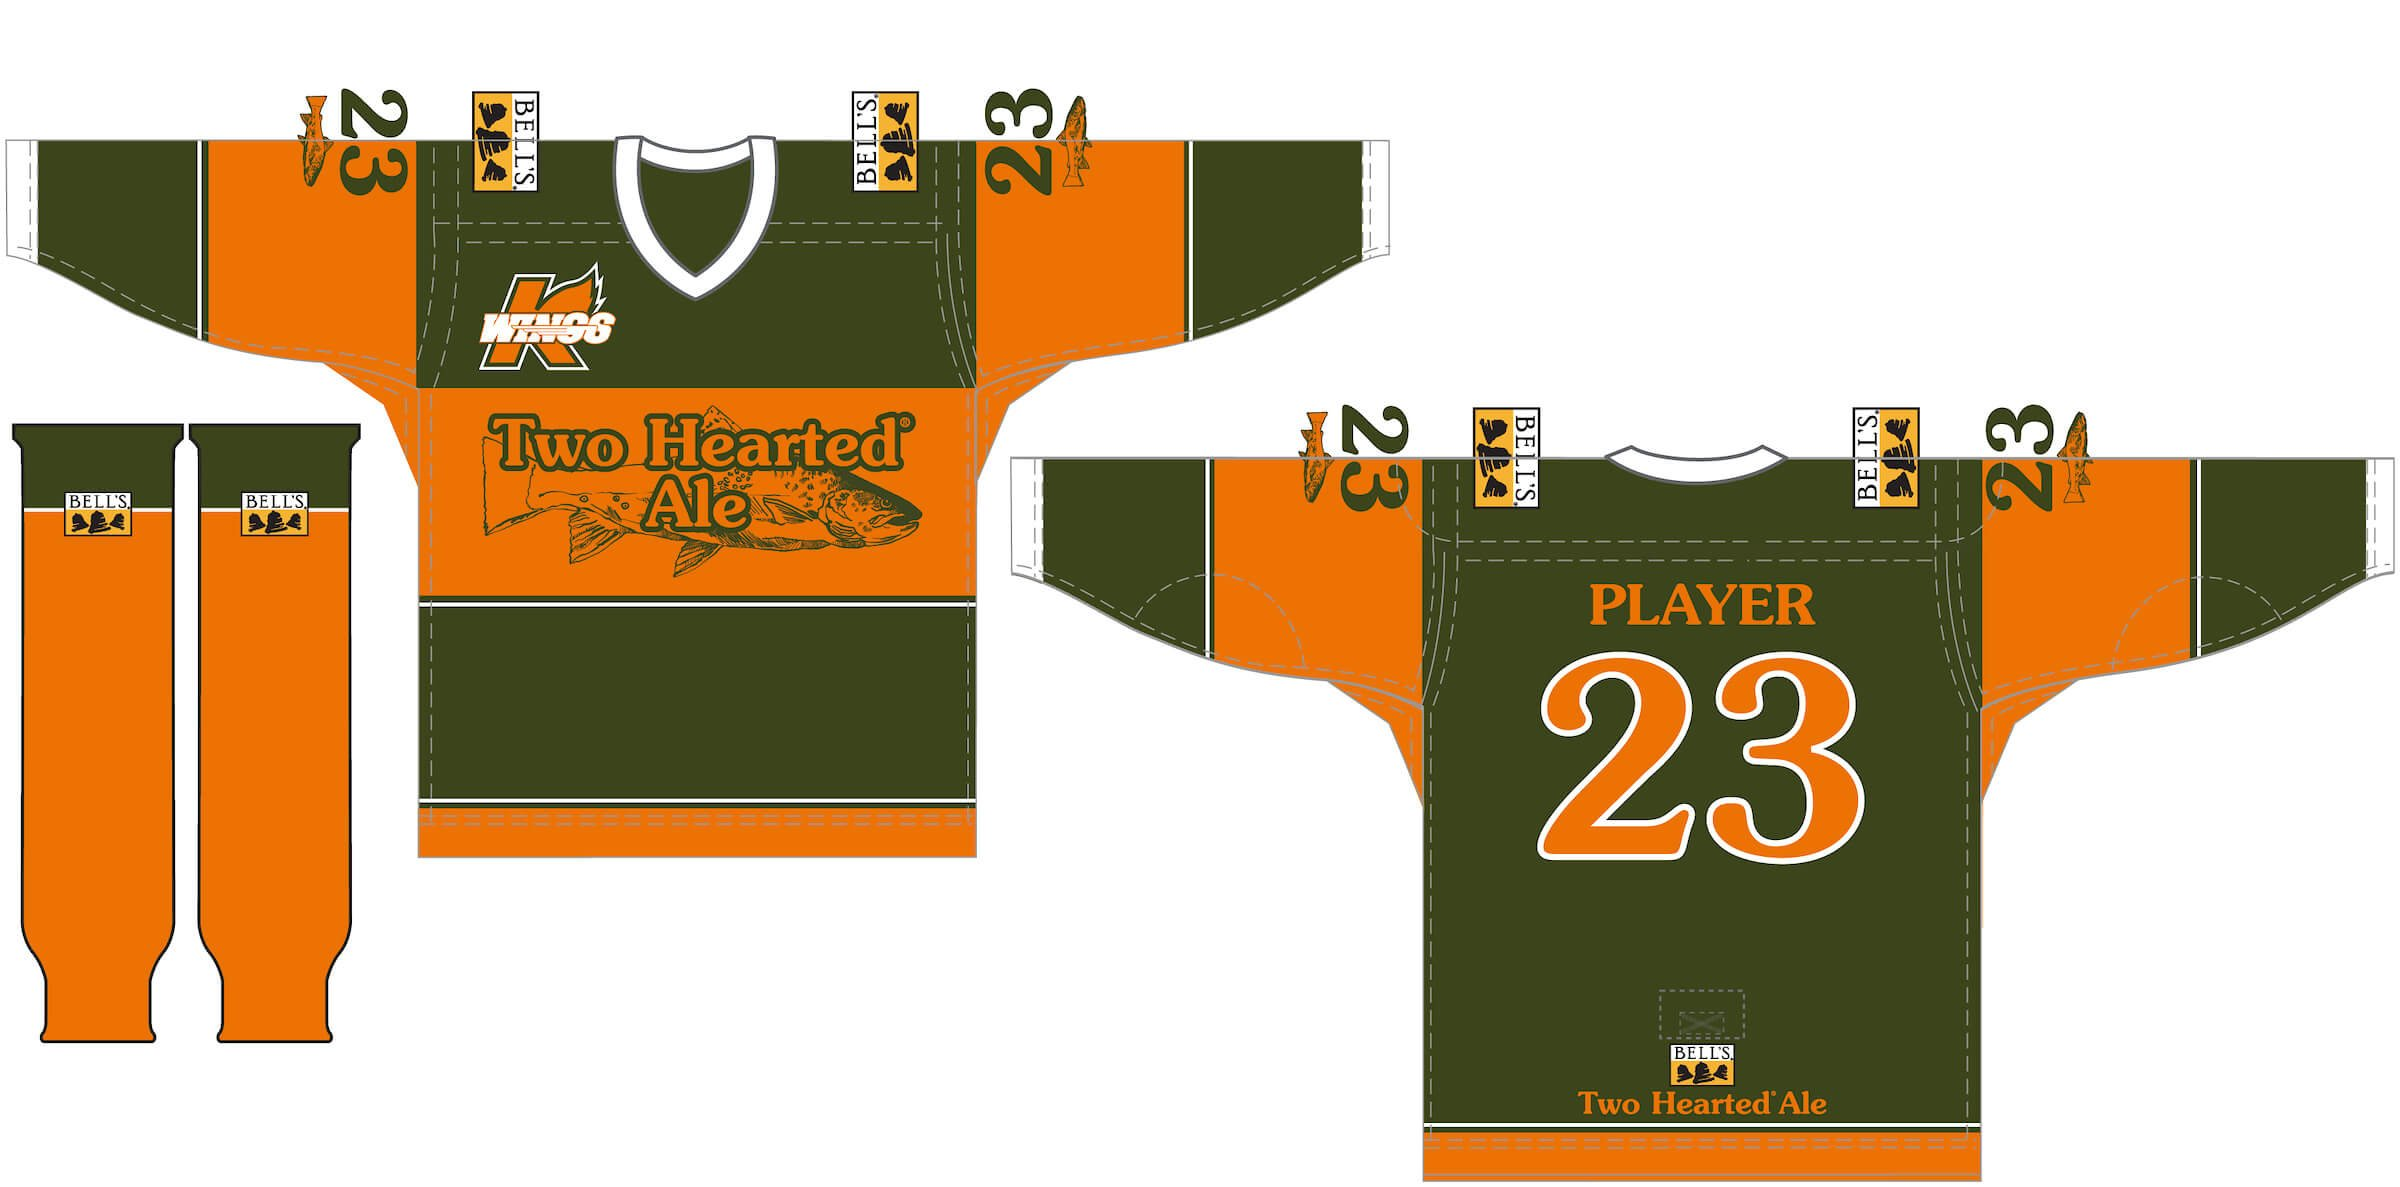 The special, limited edition hockey jerseys available at auction from Bell's Brewery, Inc. and the Kalamazoo Wings